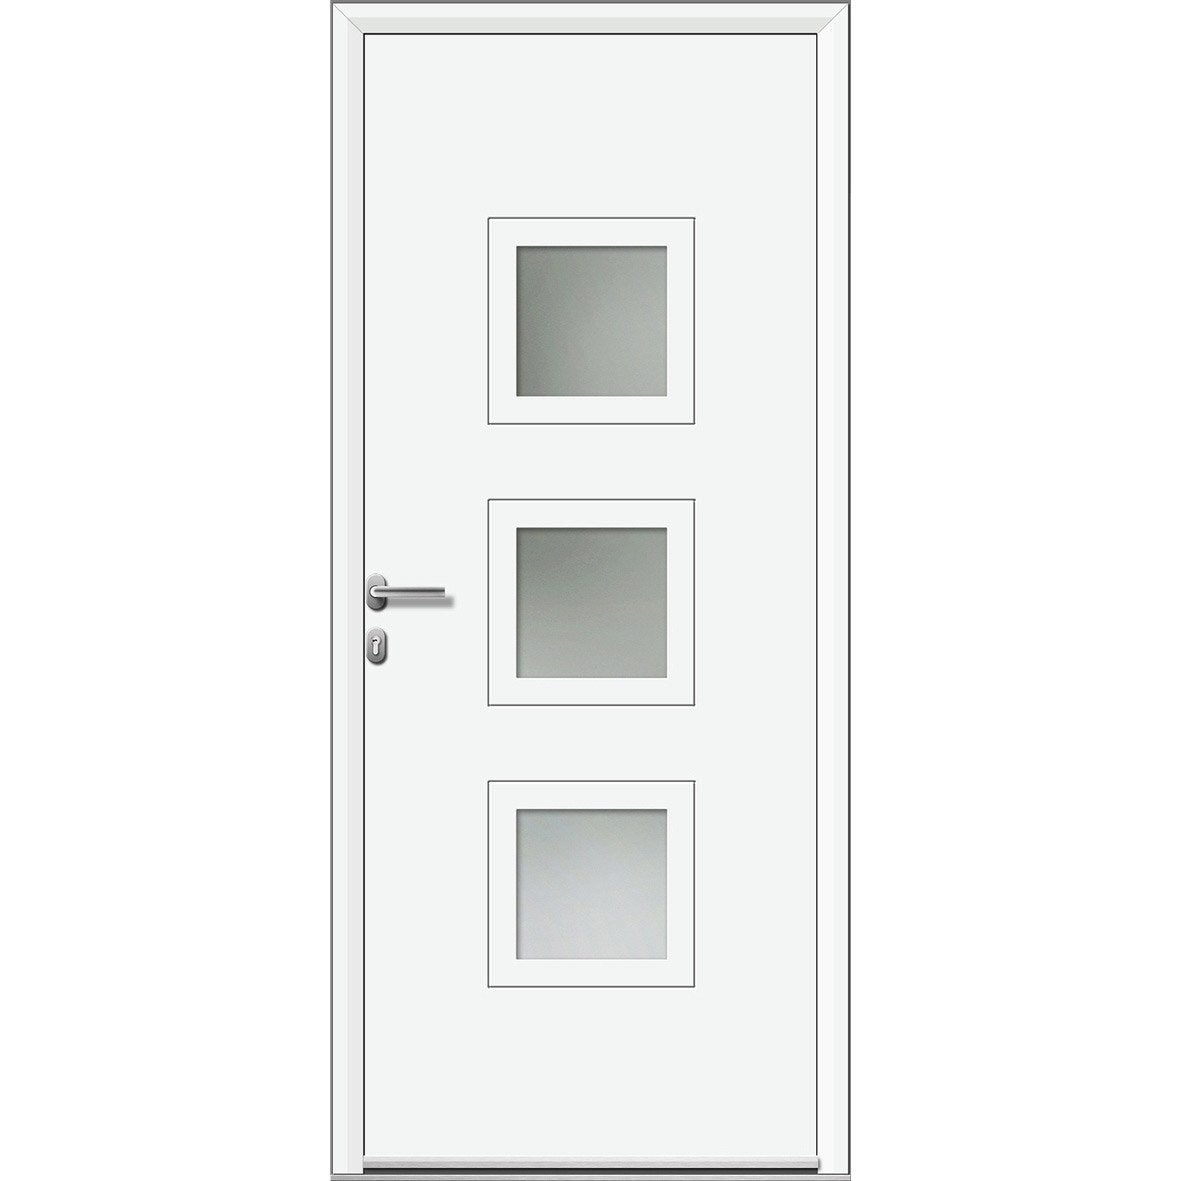 Porte western leroy merlin for Porte sur mesure